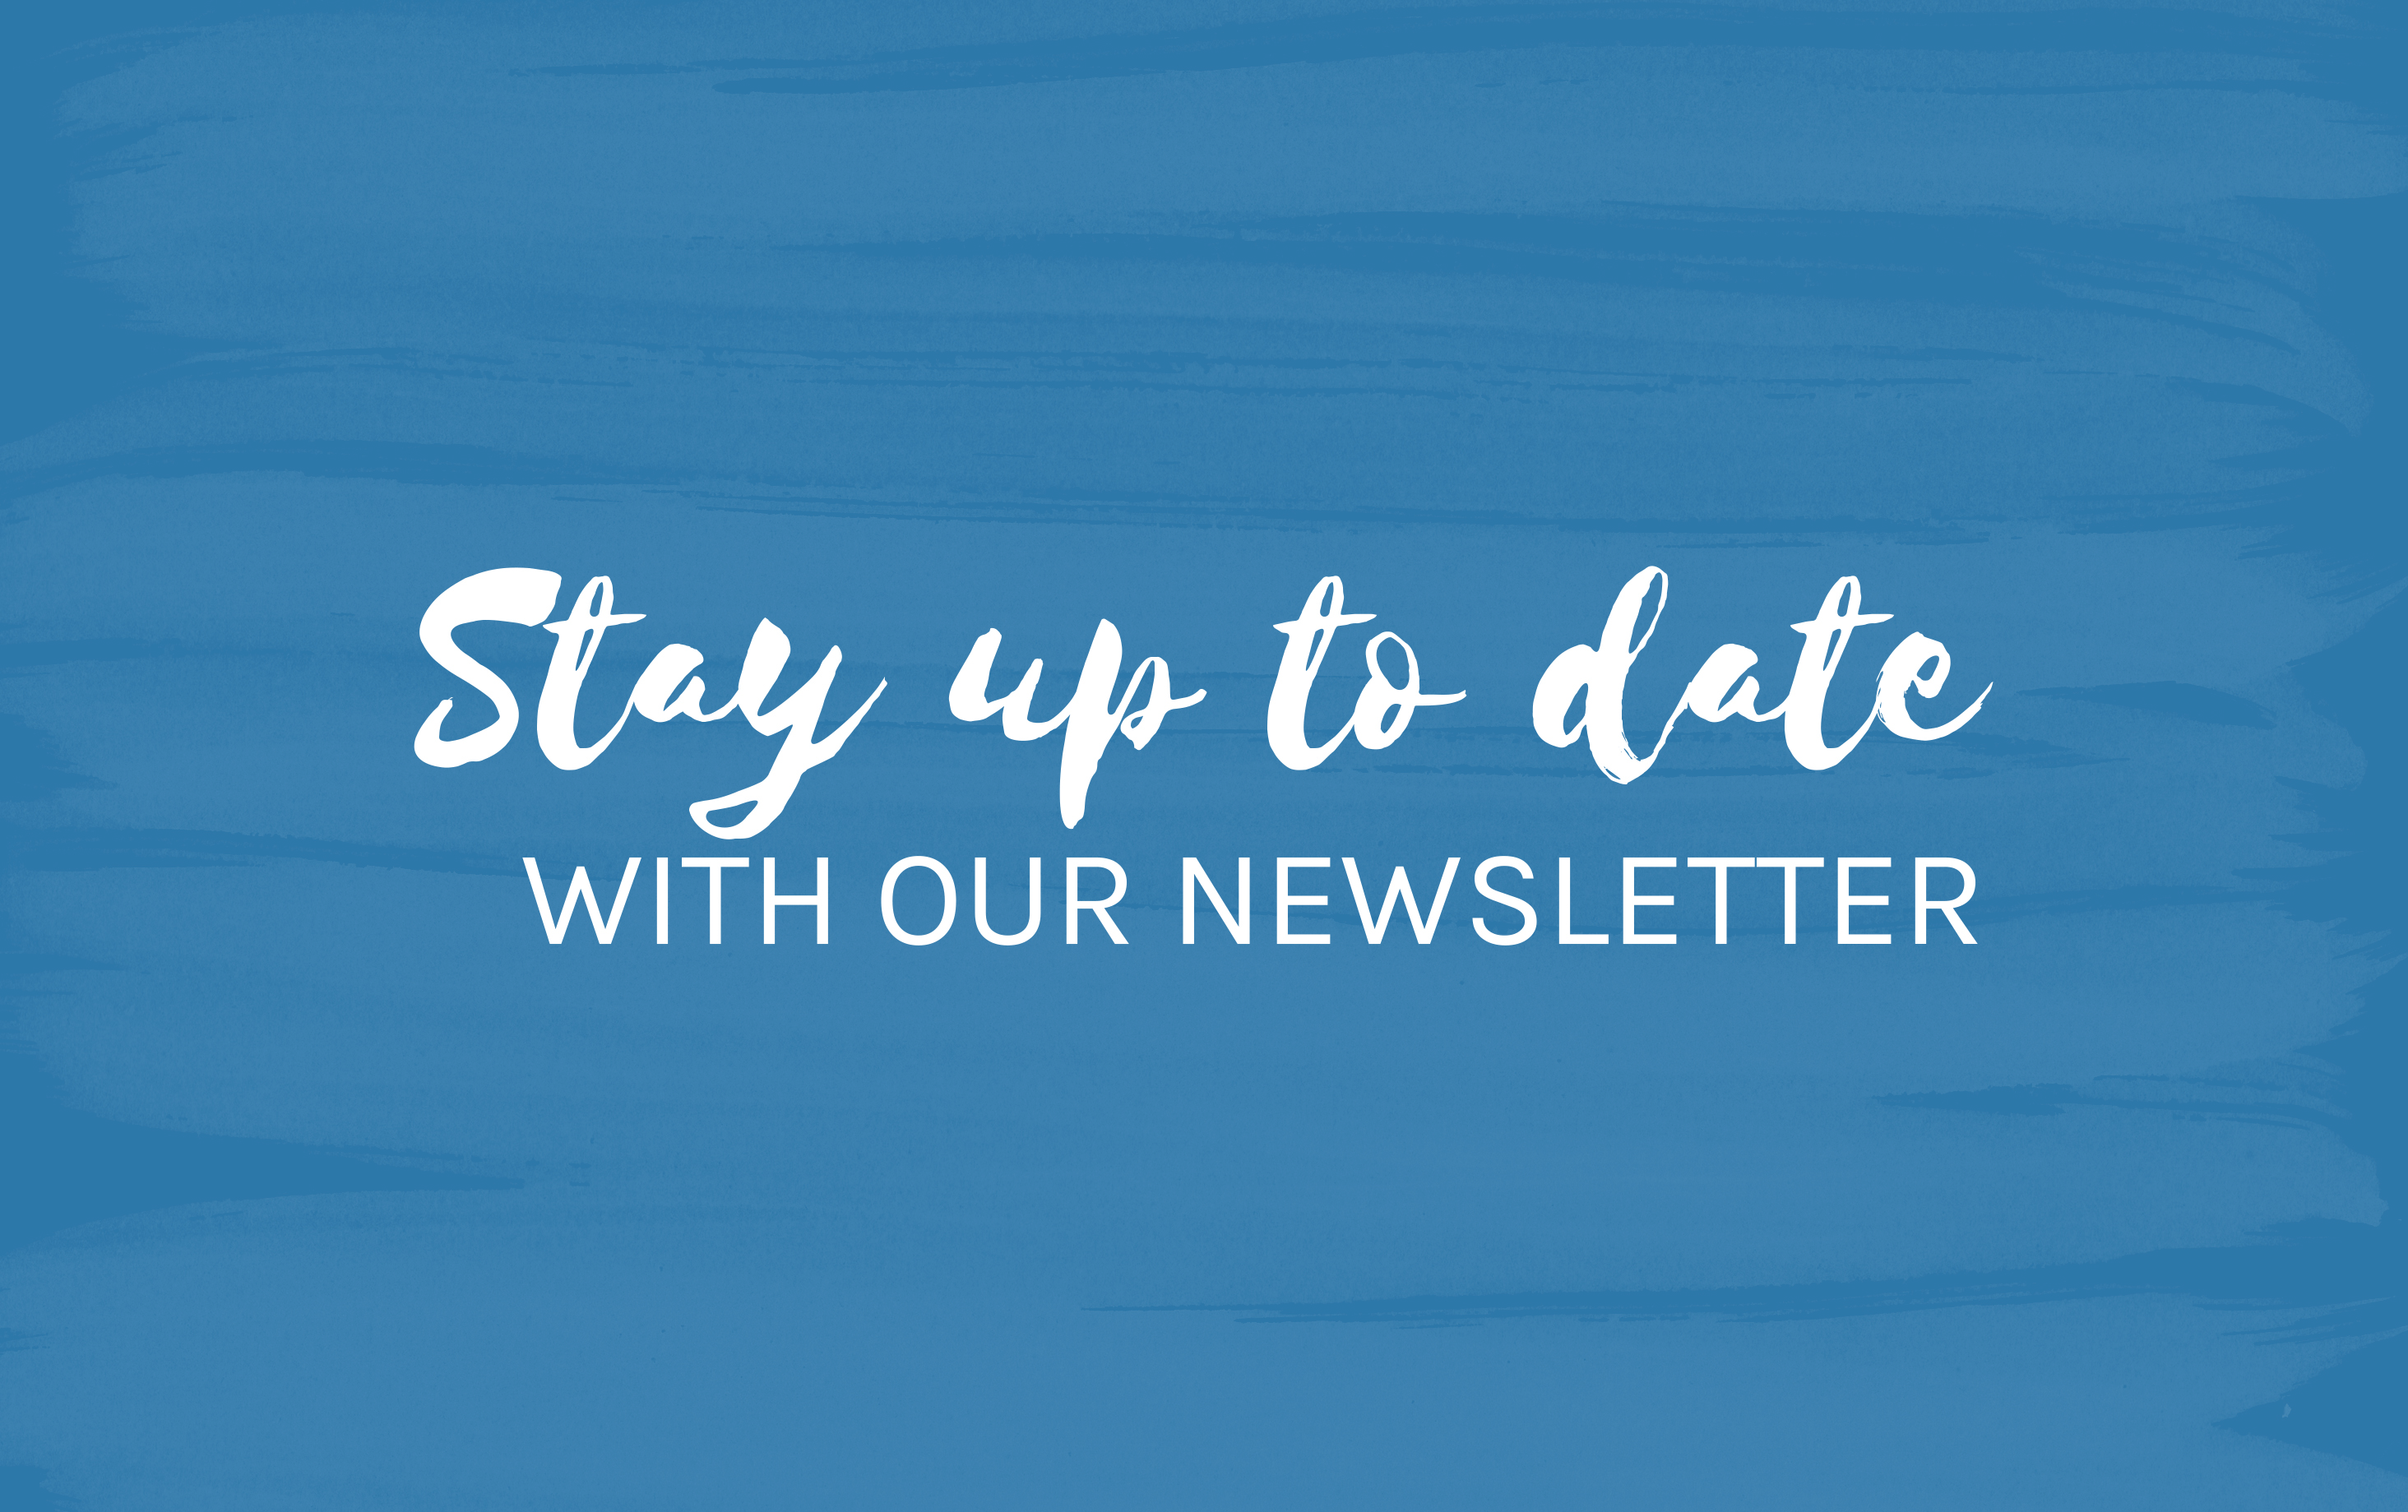 Stay up to date with our newsletter